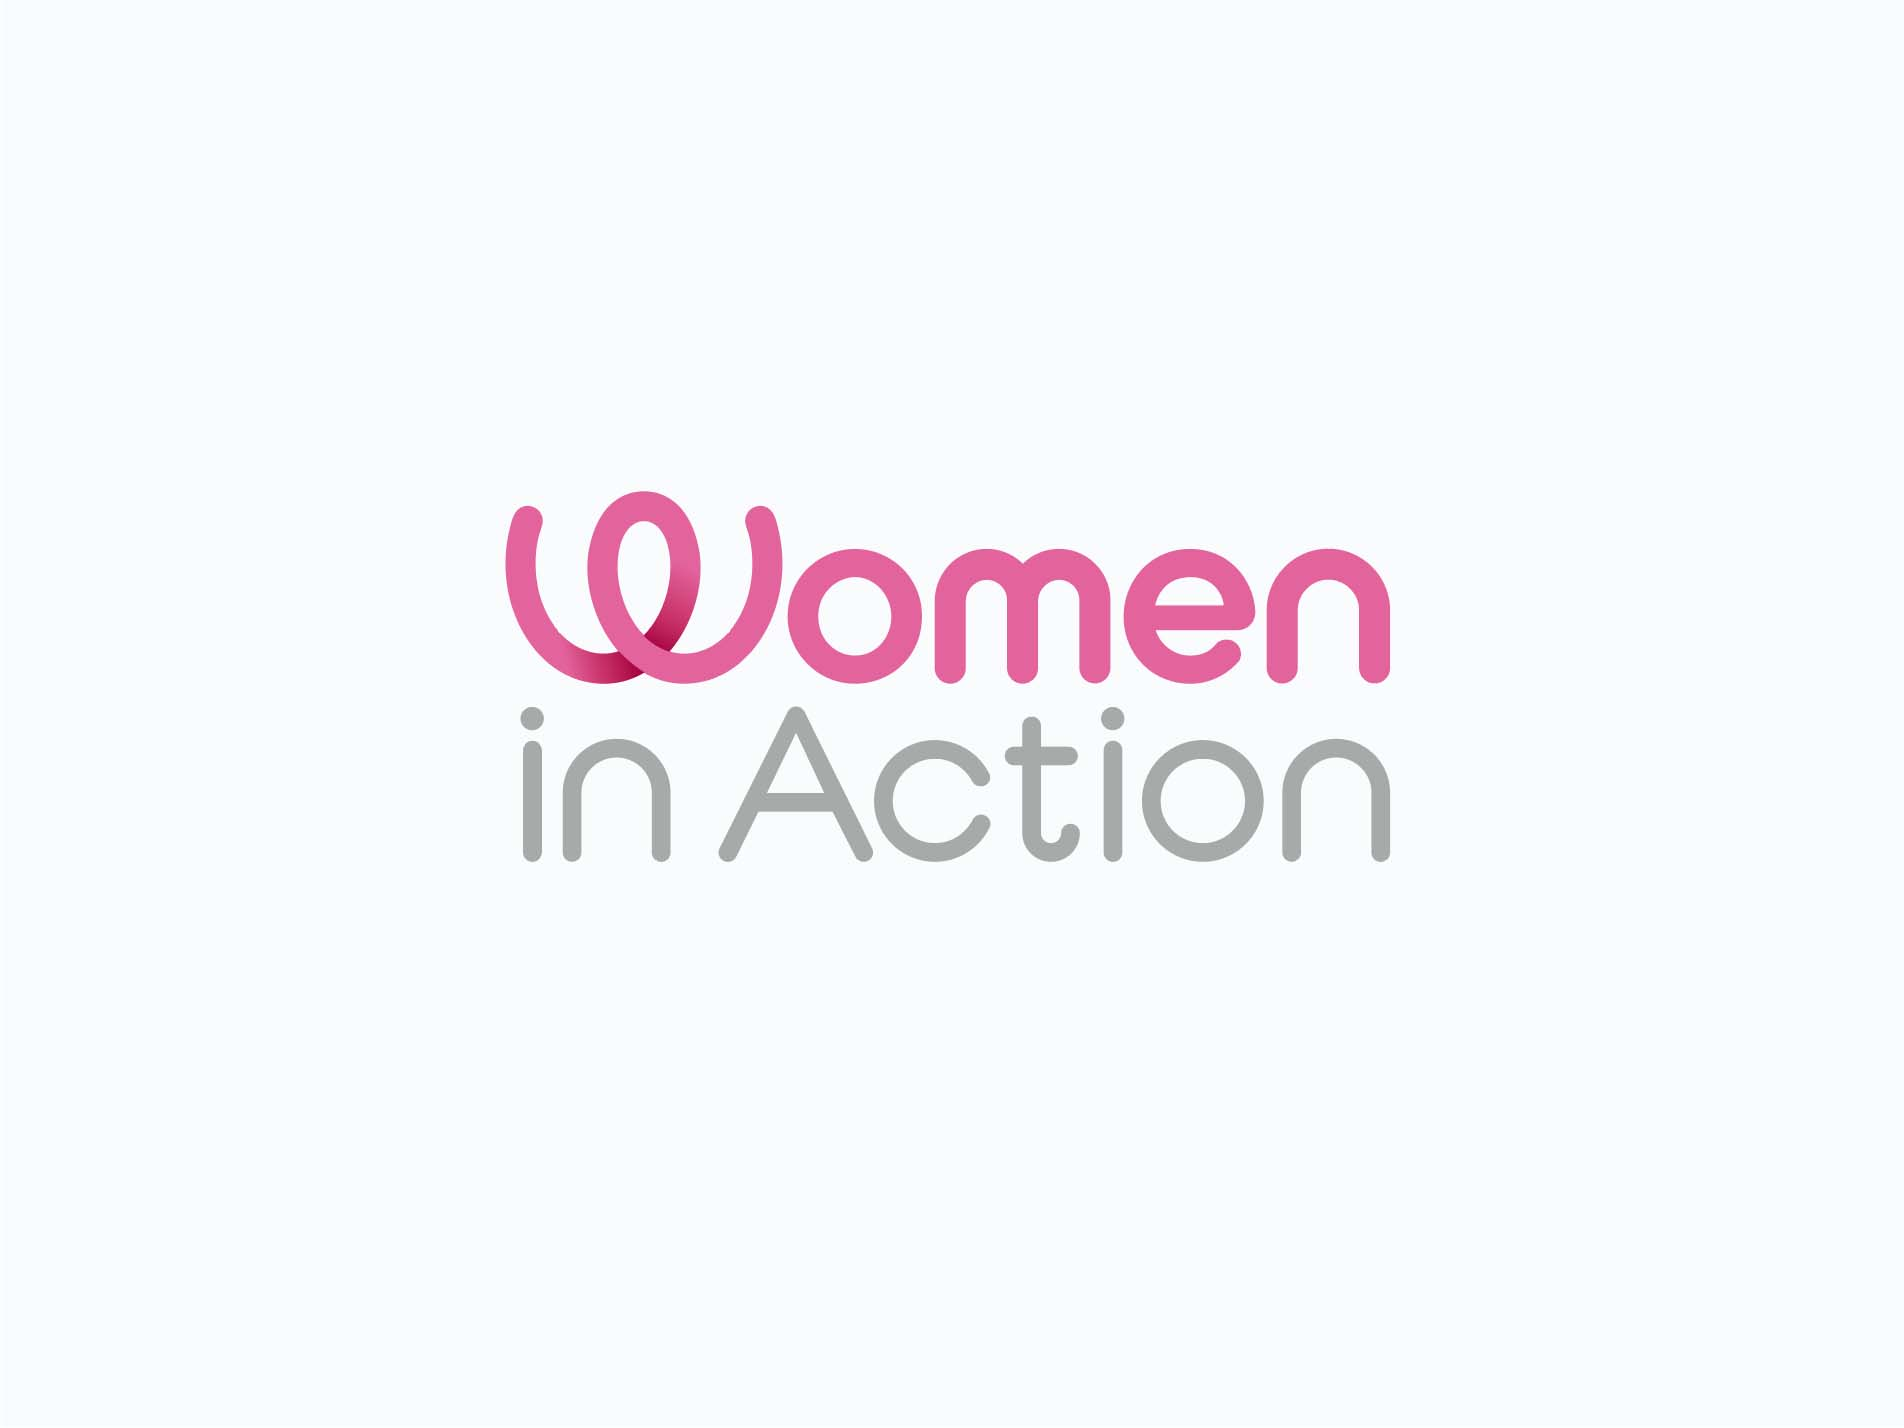 women in action branding